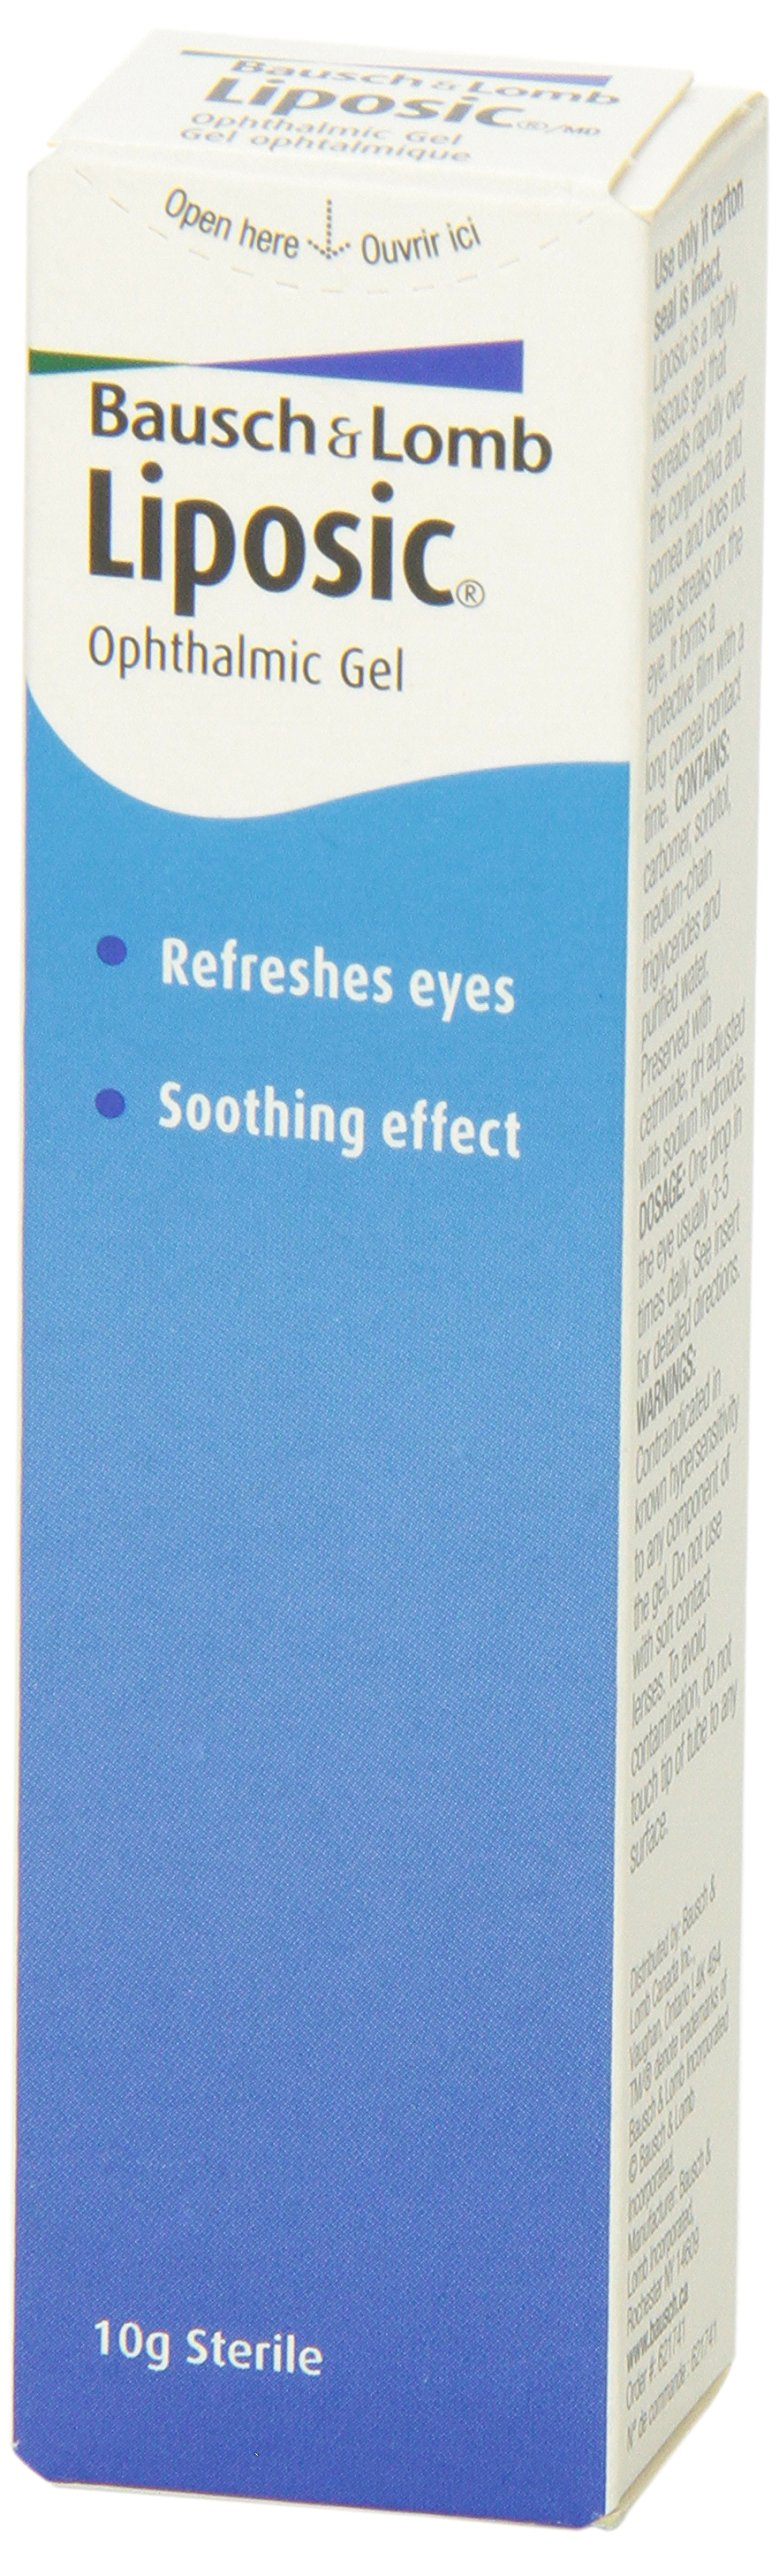 Liposic Bausch & Lomb Ophthalmic Liq Gel 10g (.35oz)